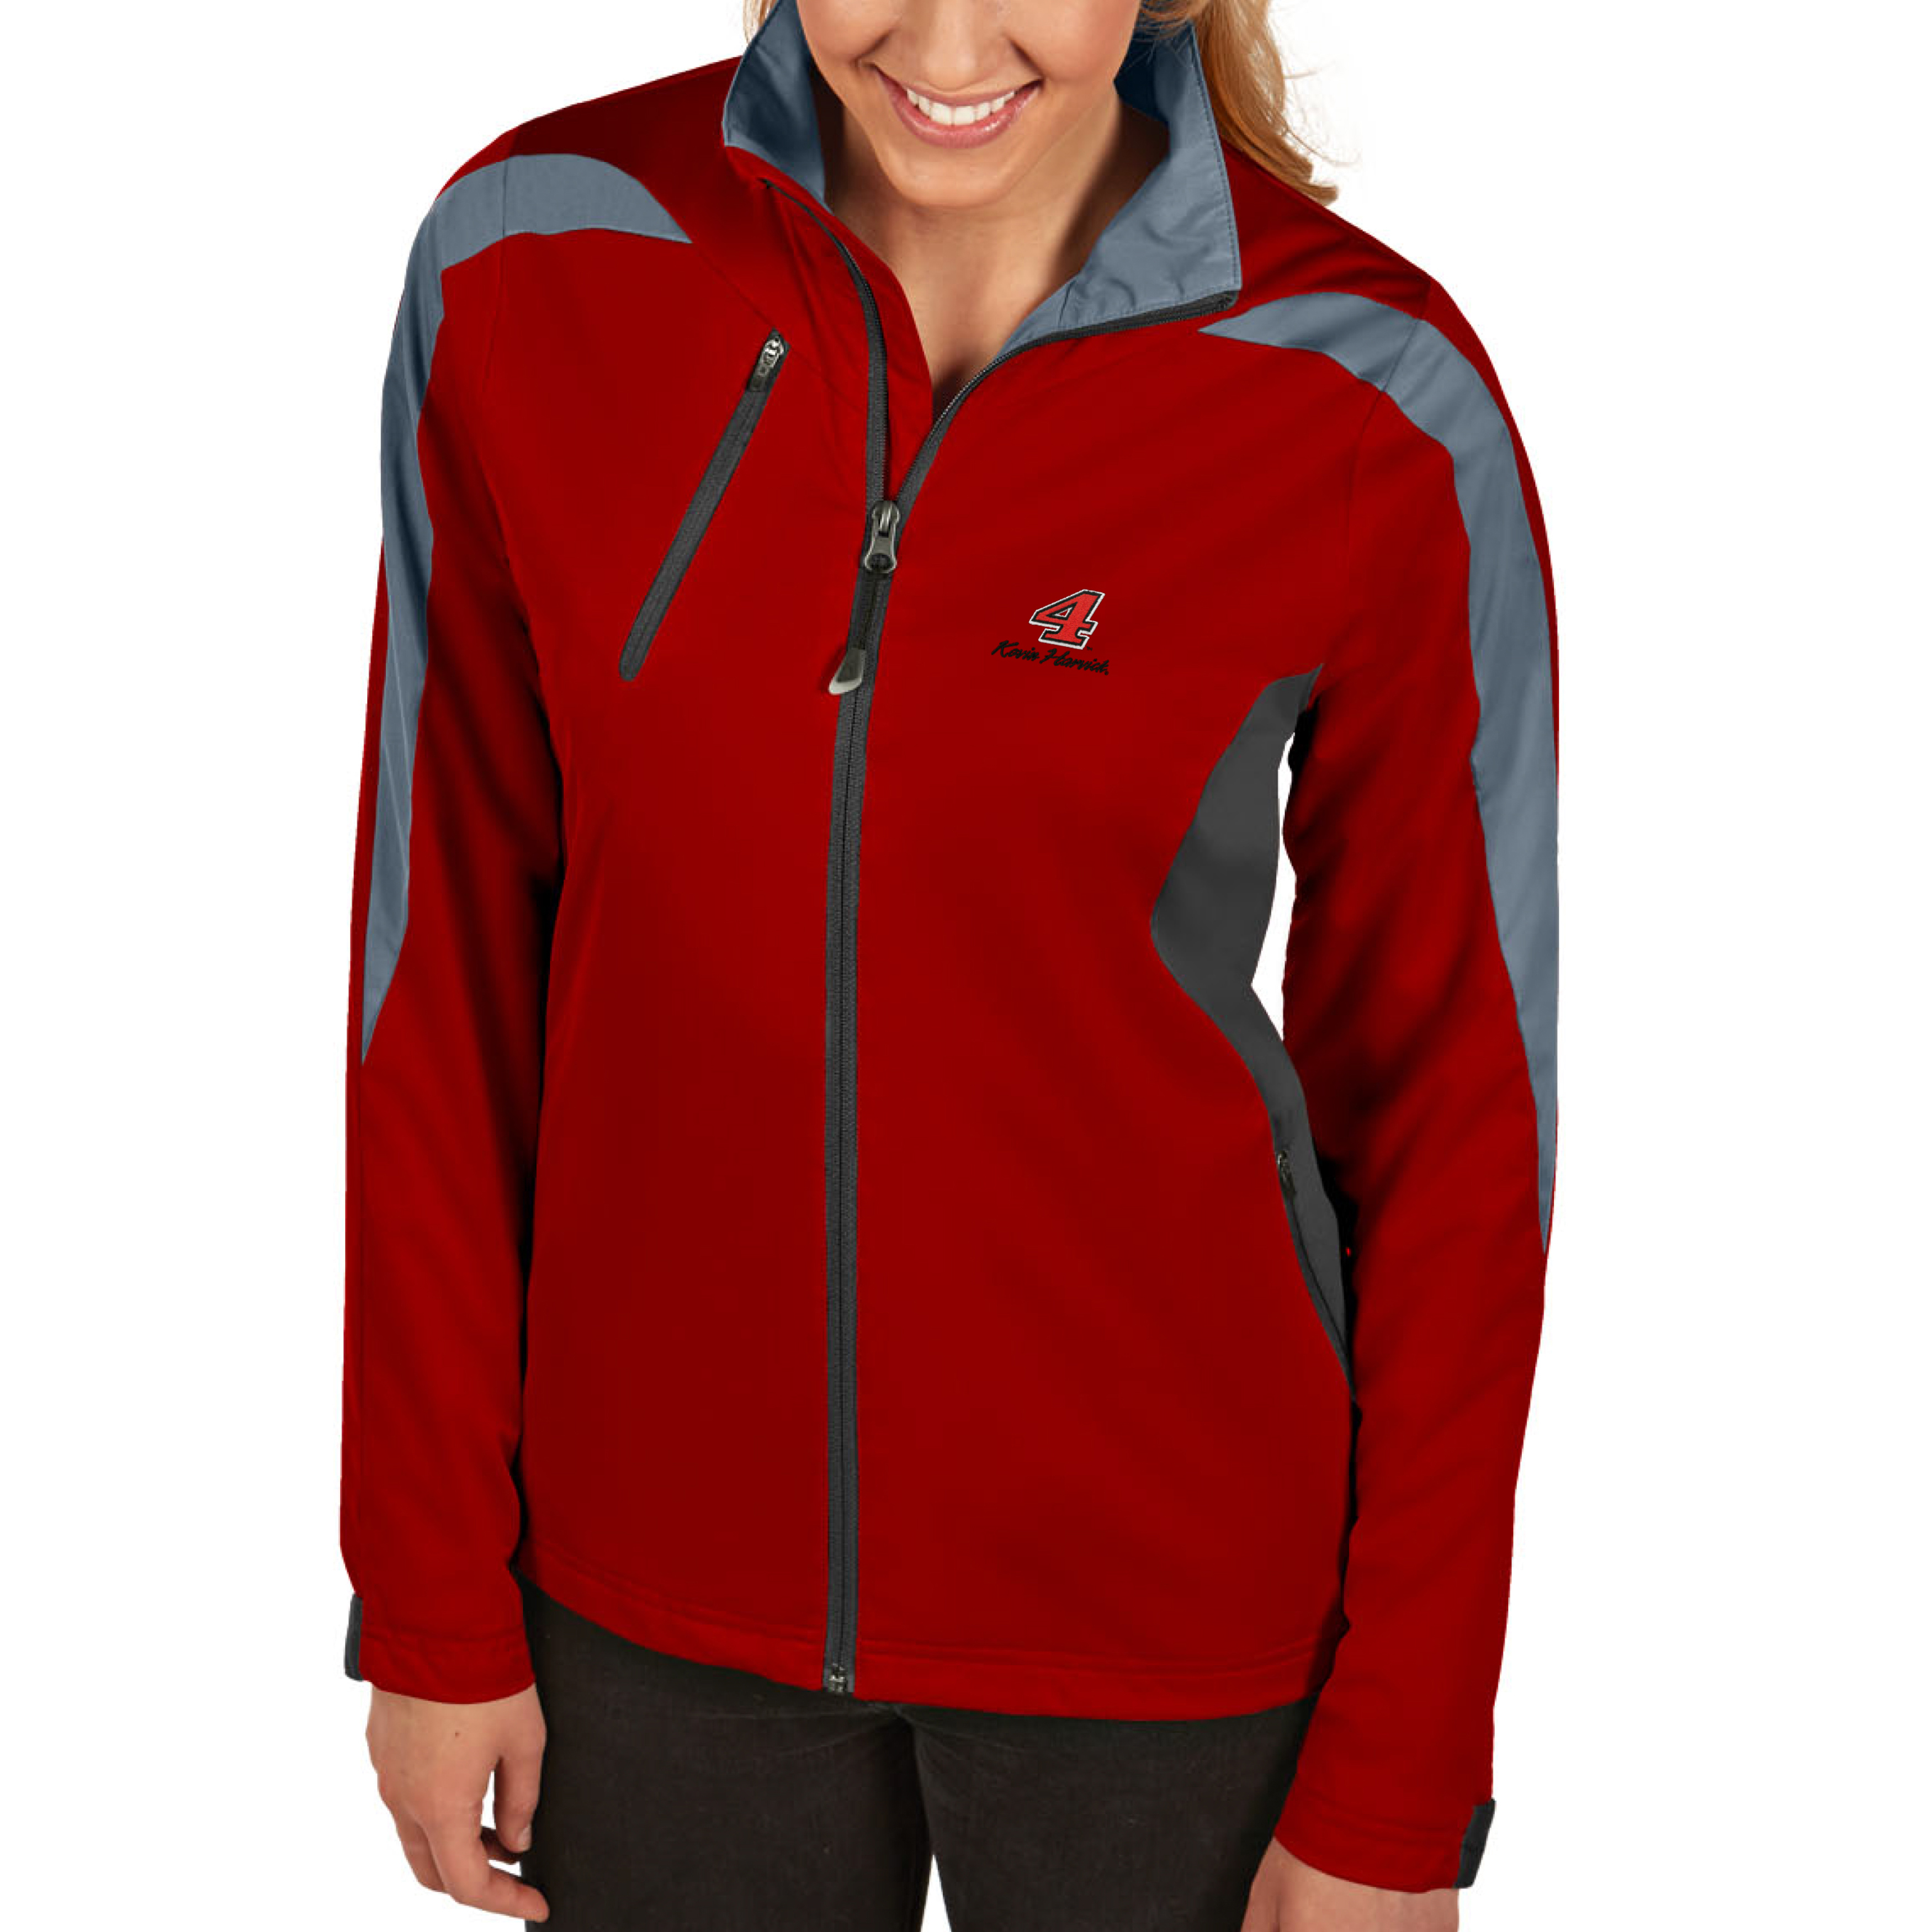 Kevin Harvick Antigua Women's Discover Full Zip Jacket - Red